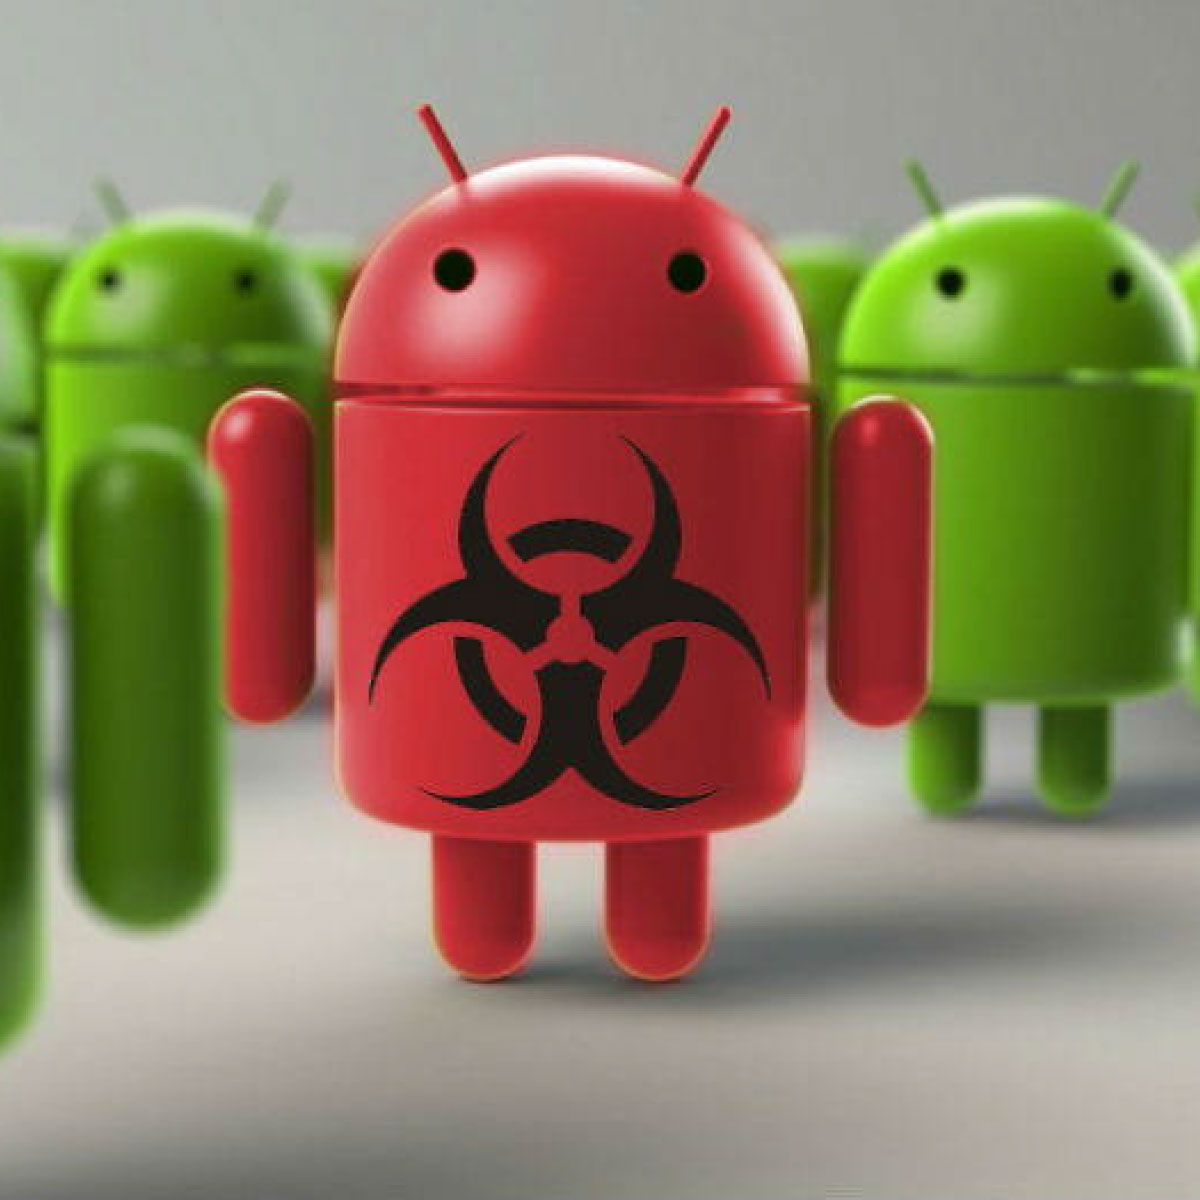 Malware Detection in Android Applicatoin